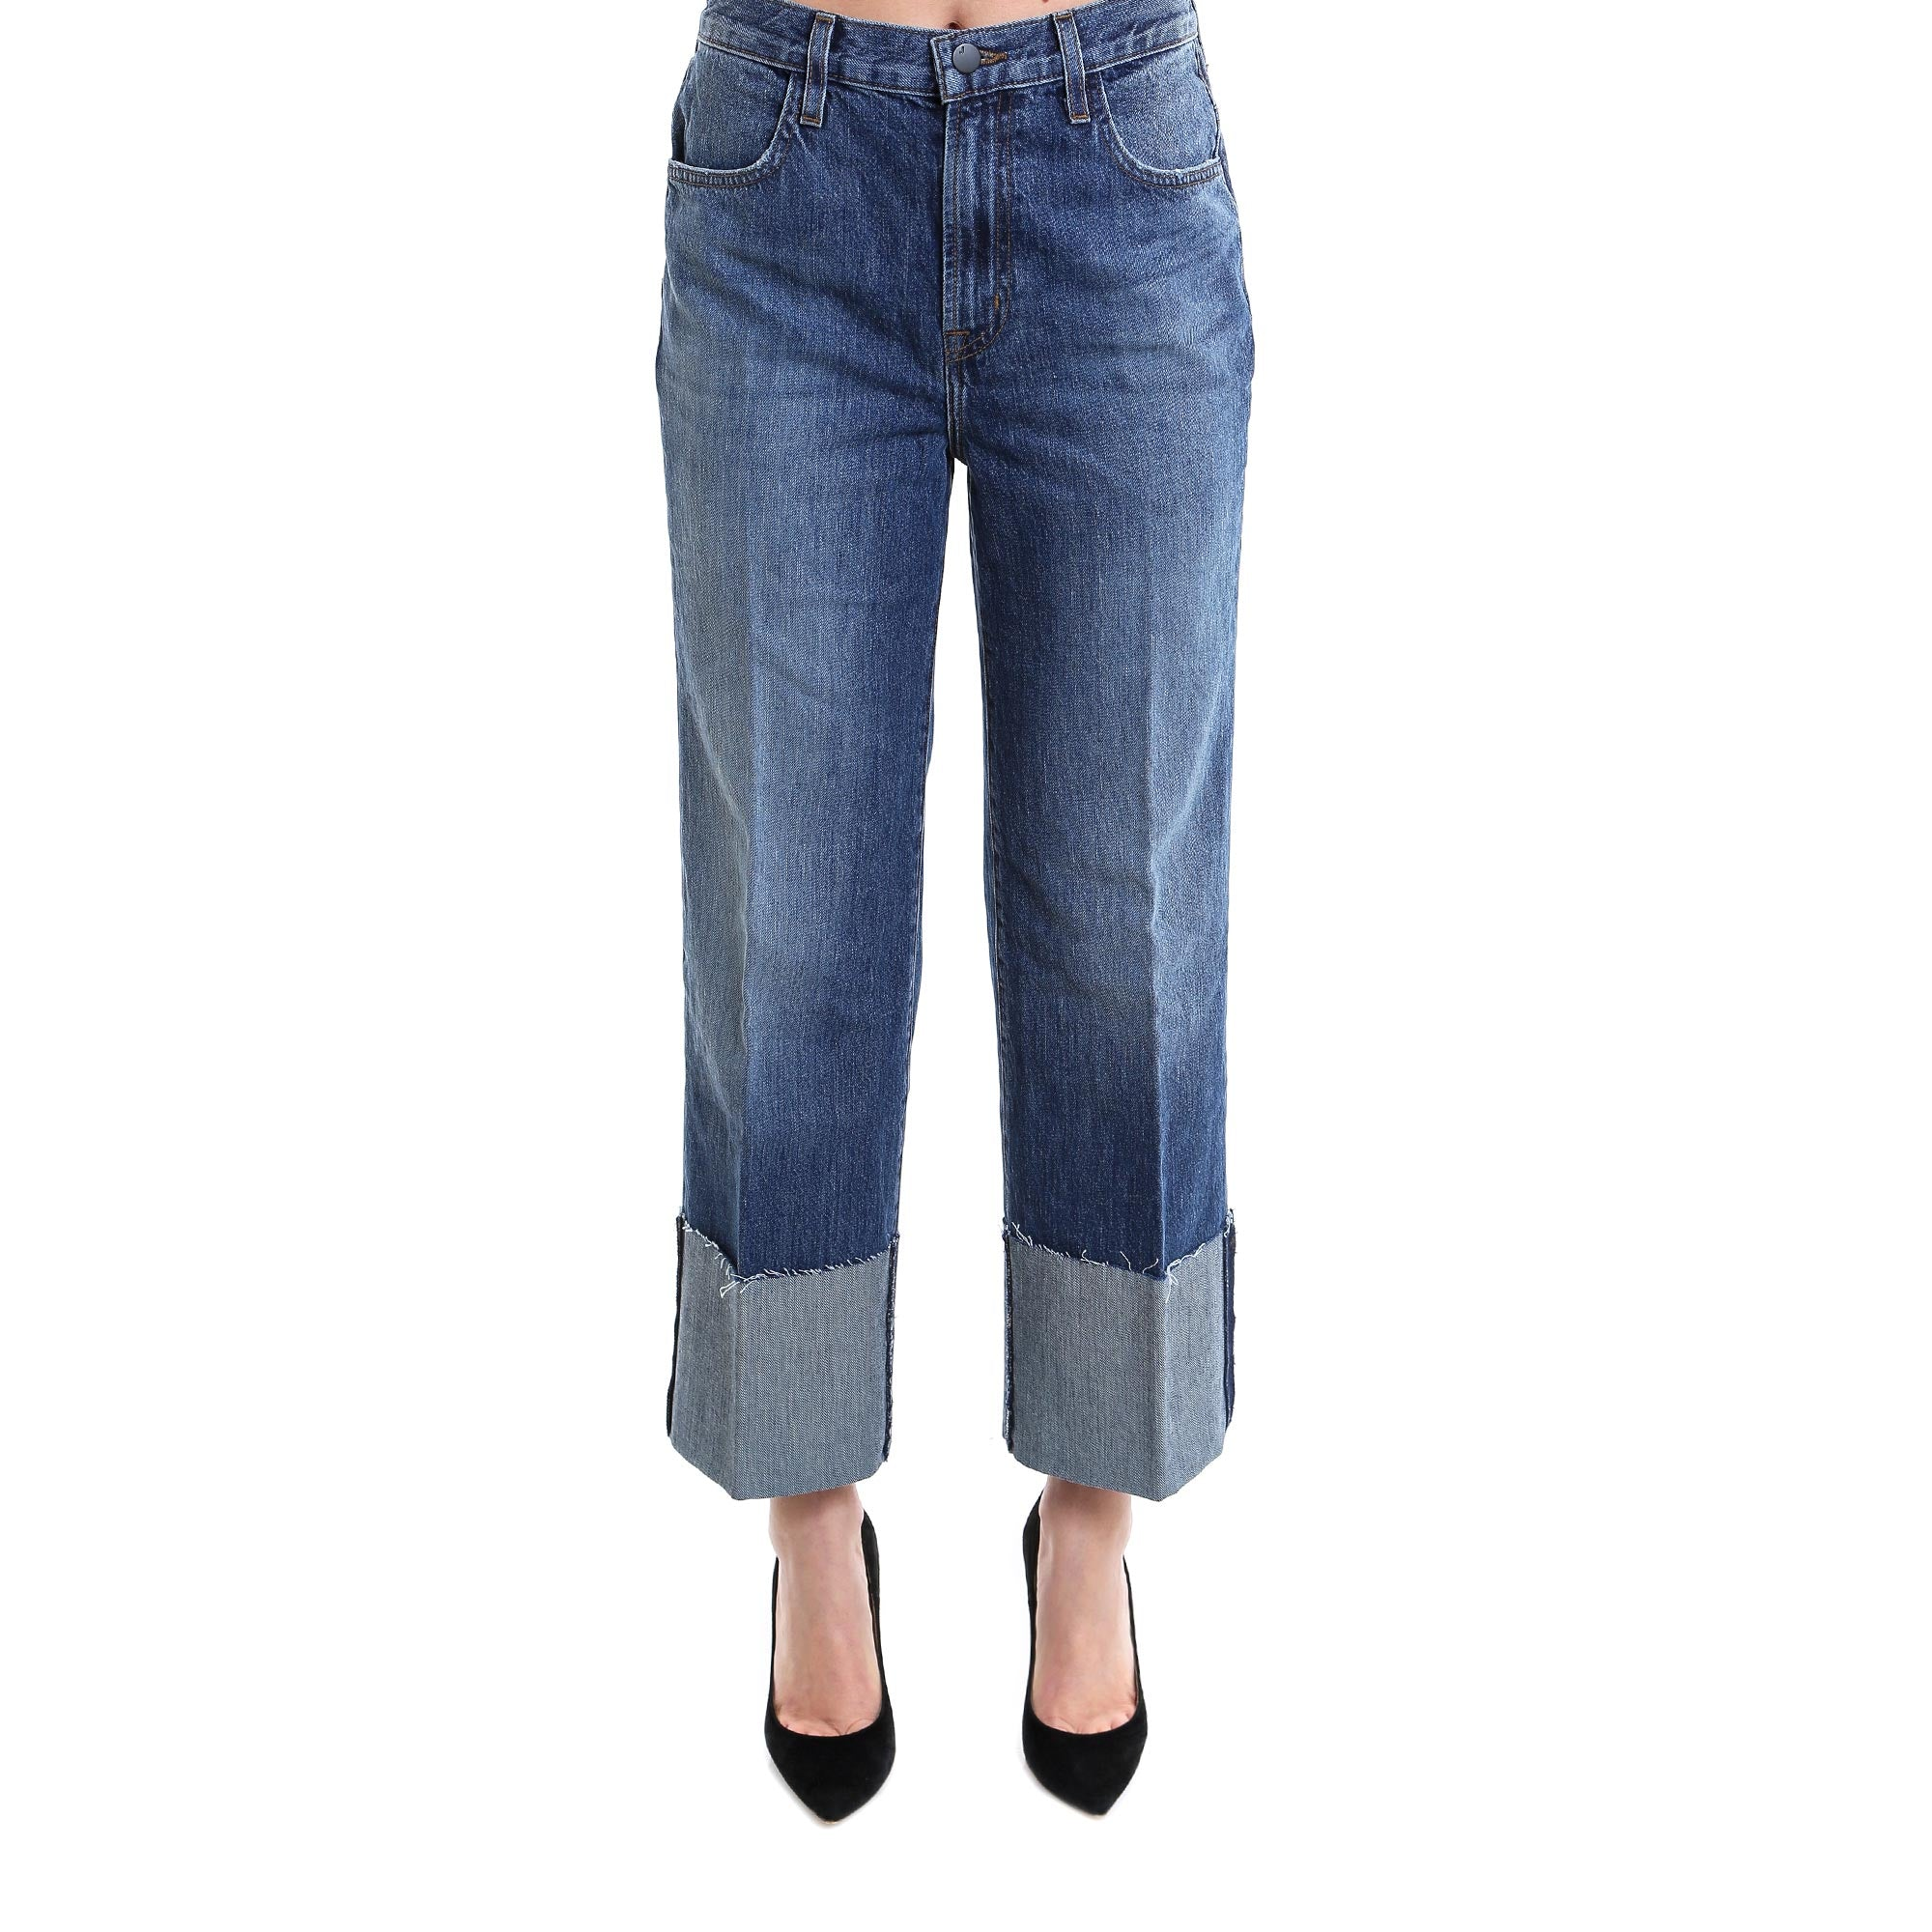 J BRAND CROPPED LOOSE FIT JEANS